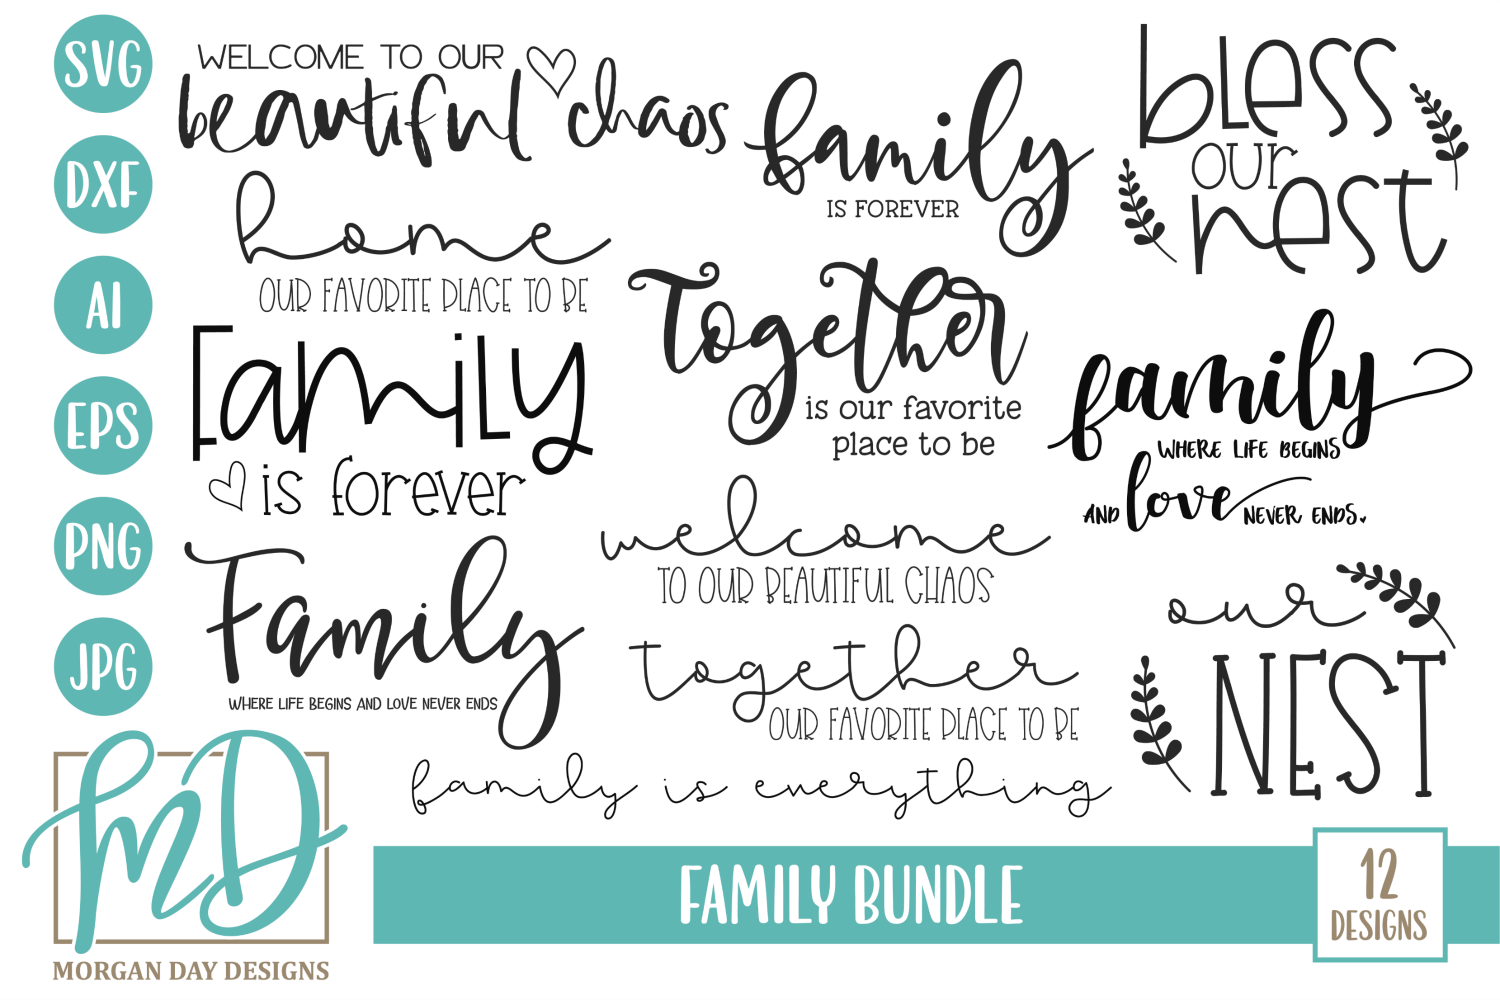 Download Free Family Bundle Graphic By Morgan Day Designs Creative Fabrica for Cricut Explore, Silhouette and other cutting machines.